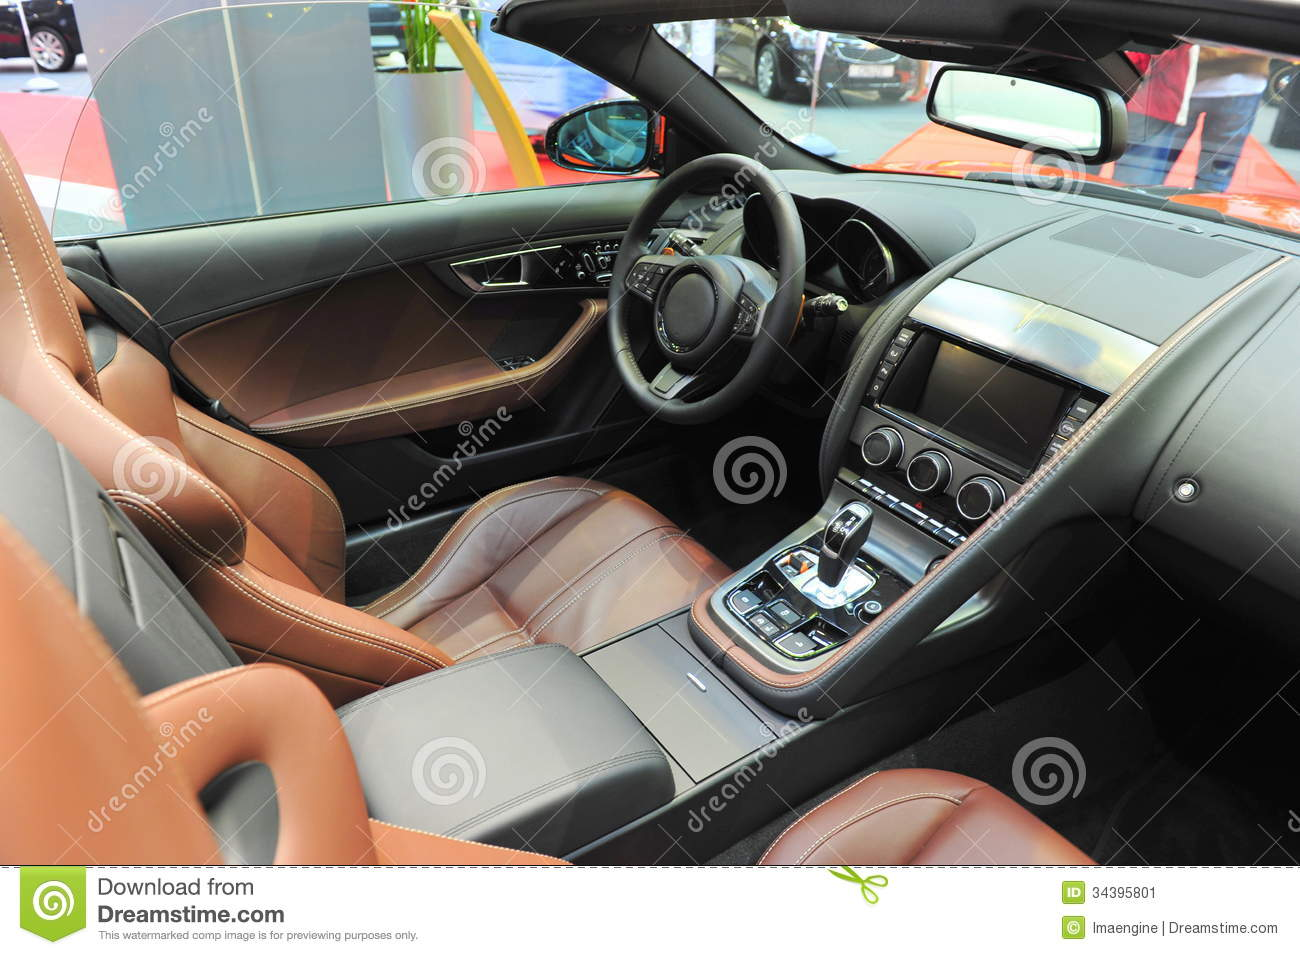 leather interior of a convertible jaguar sports car stock image image 34395801. Black Bedroom Furniture Sets. Home Design Ideas